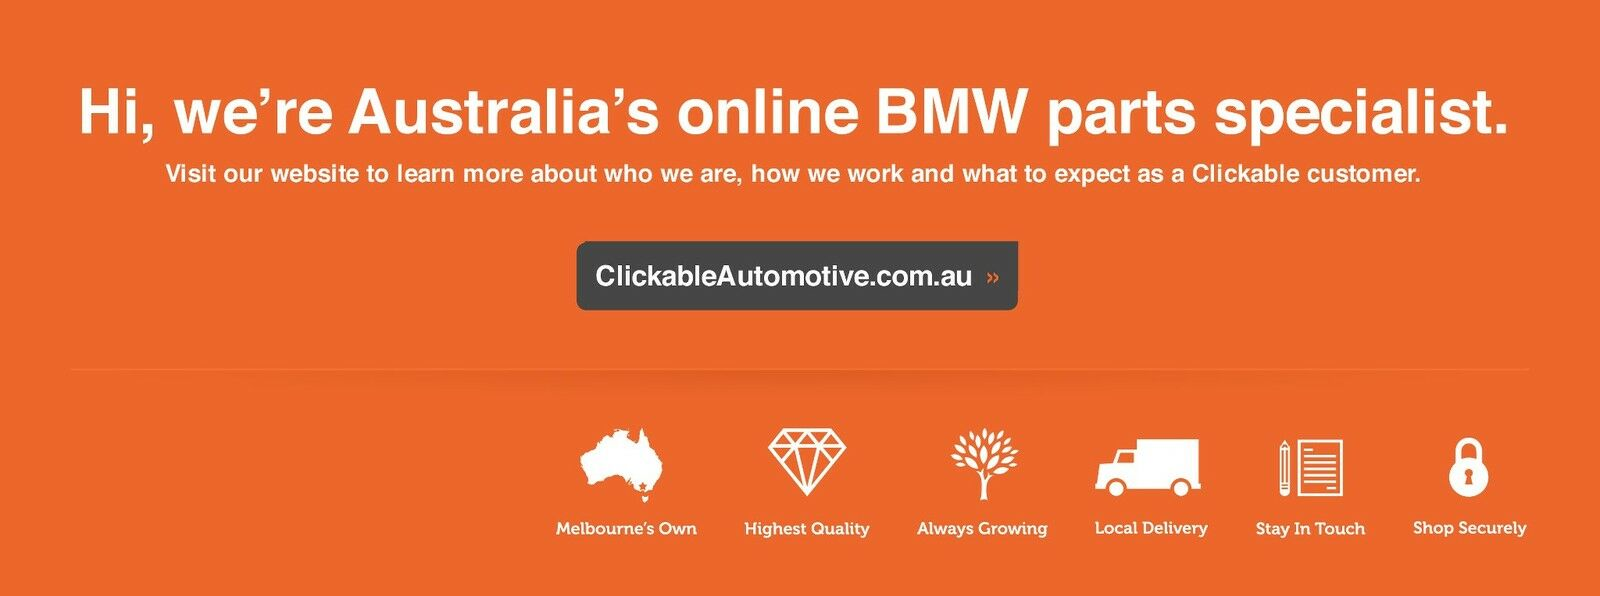 Clickable Automotive